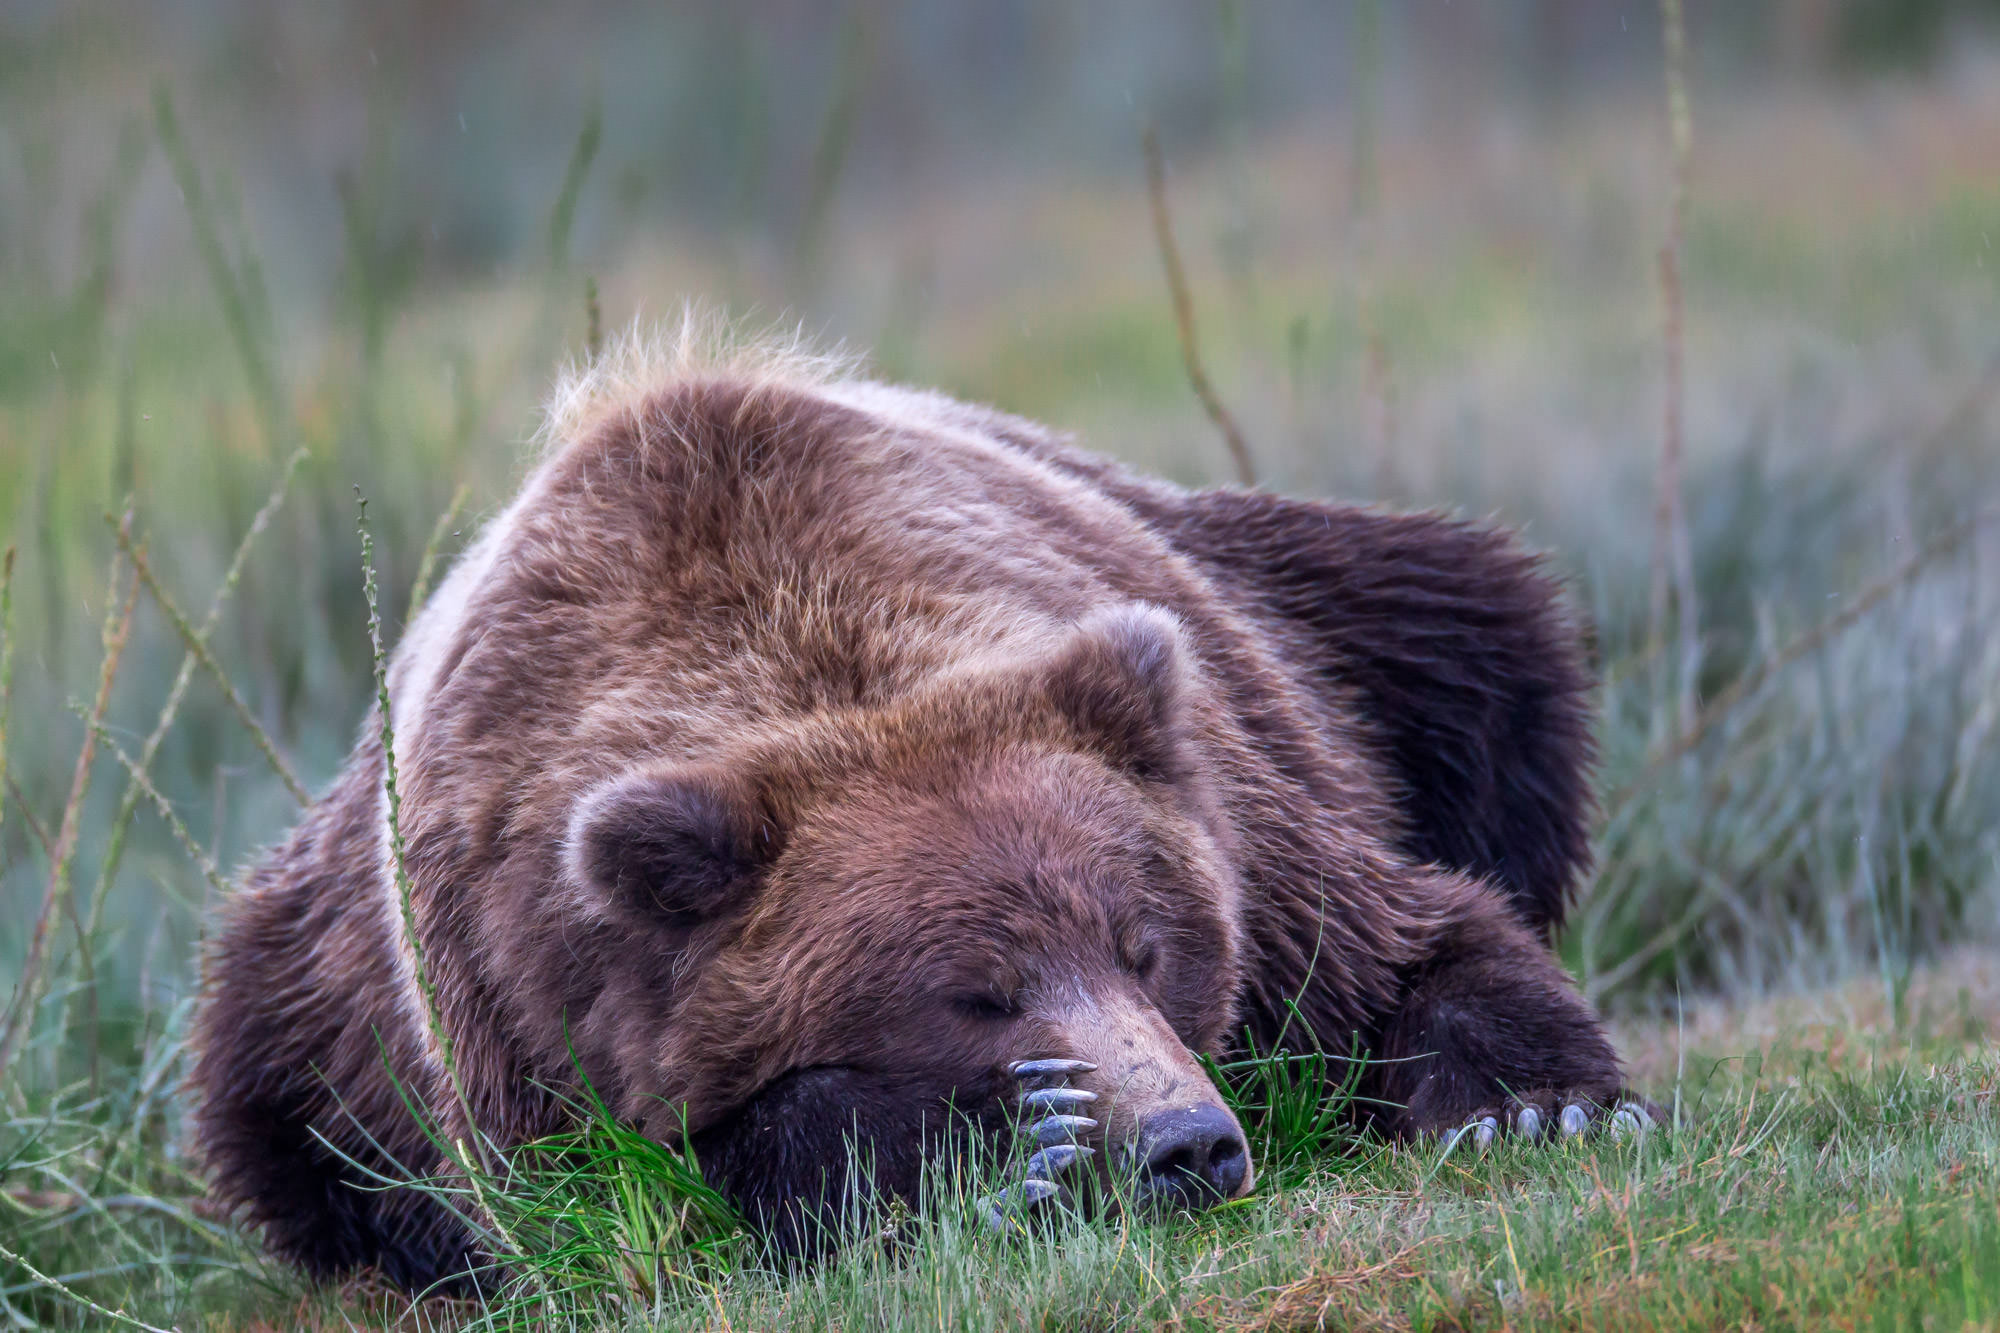 Grizzly Bear Fine Art Photography A Limited Edition photograph of a Grizzly Bear having a little nap time in the grass at Lake...